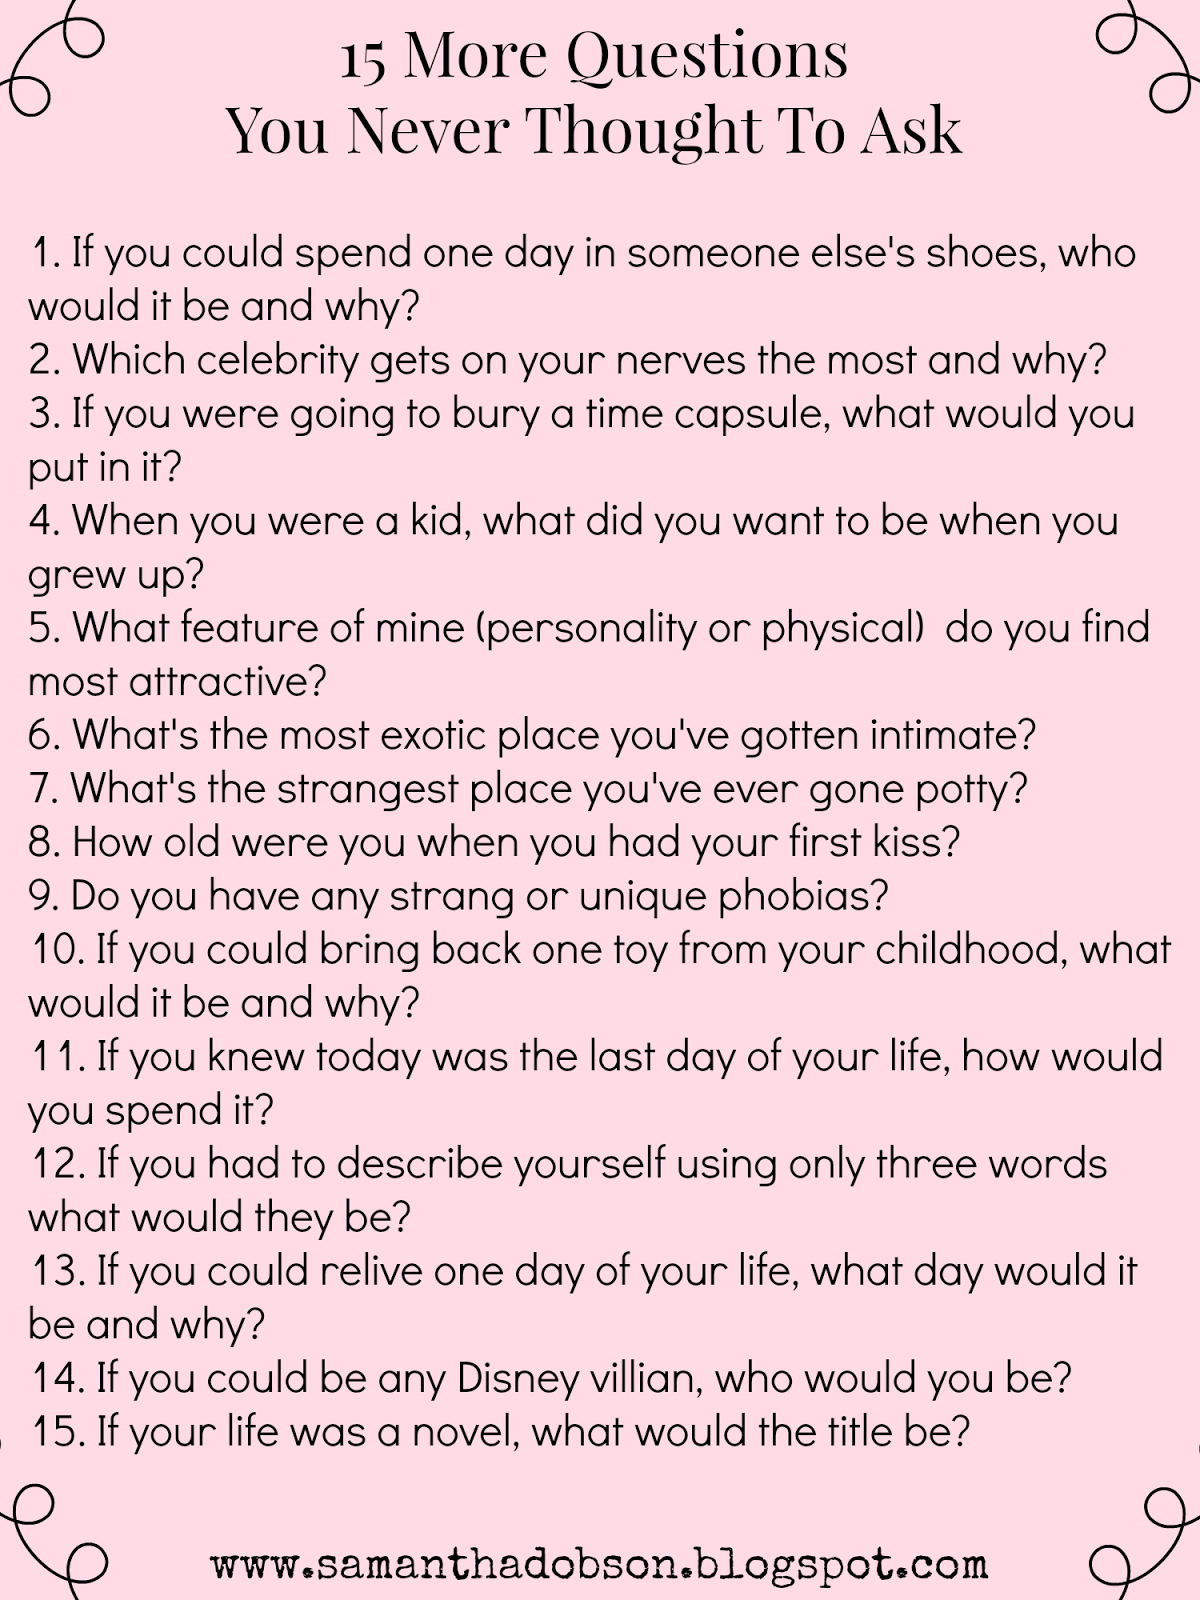 Personality questions to ask someone